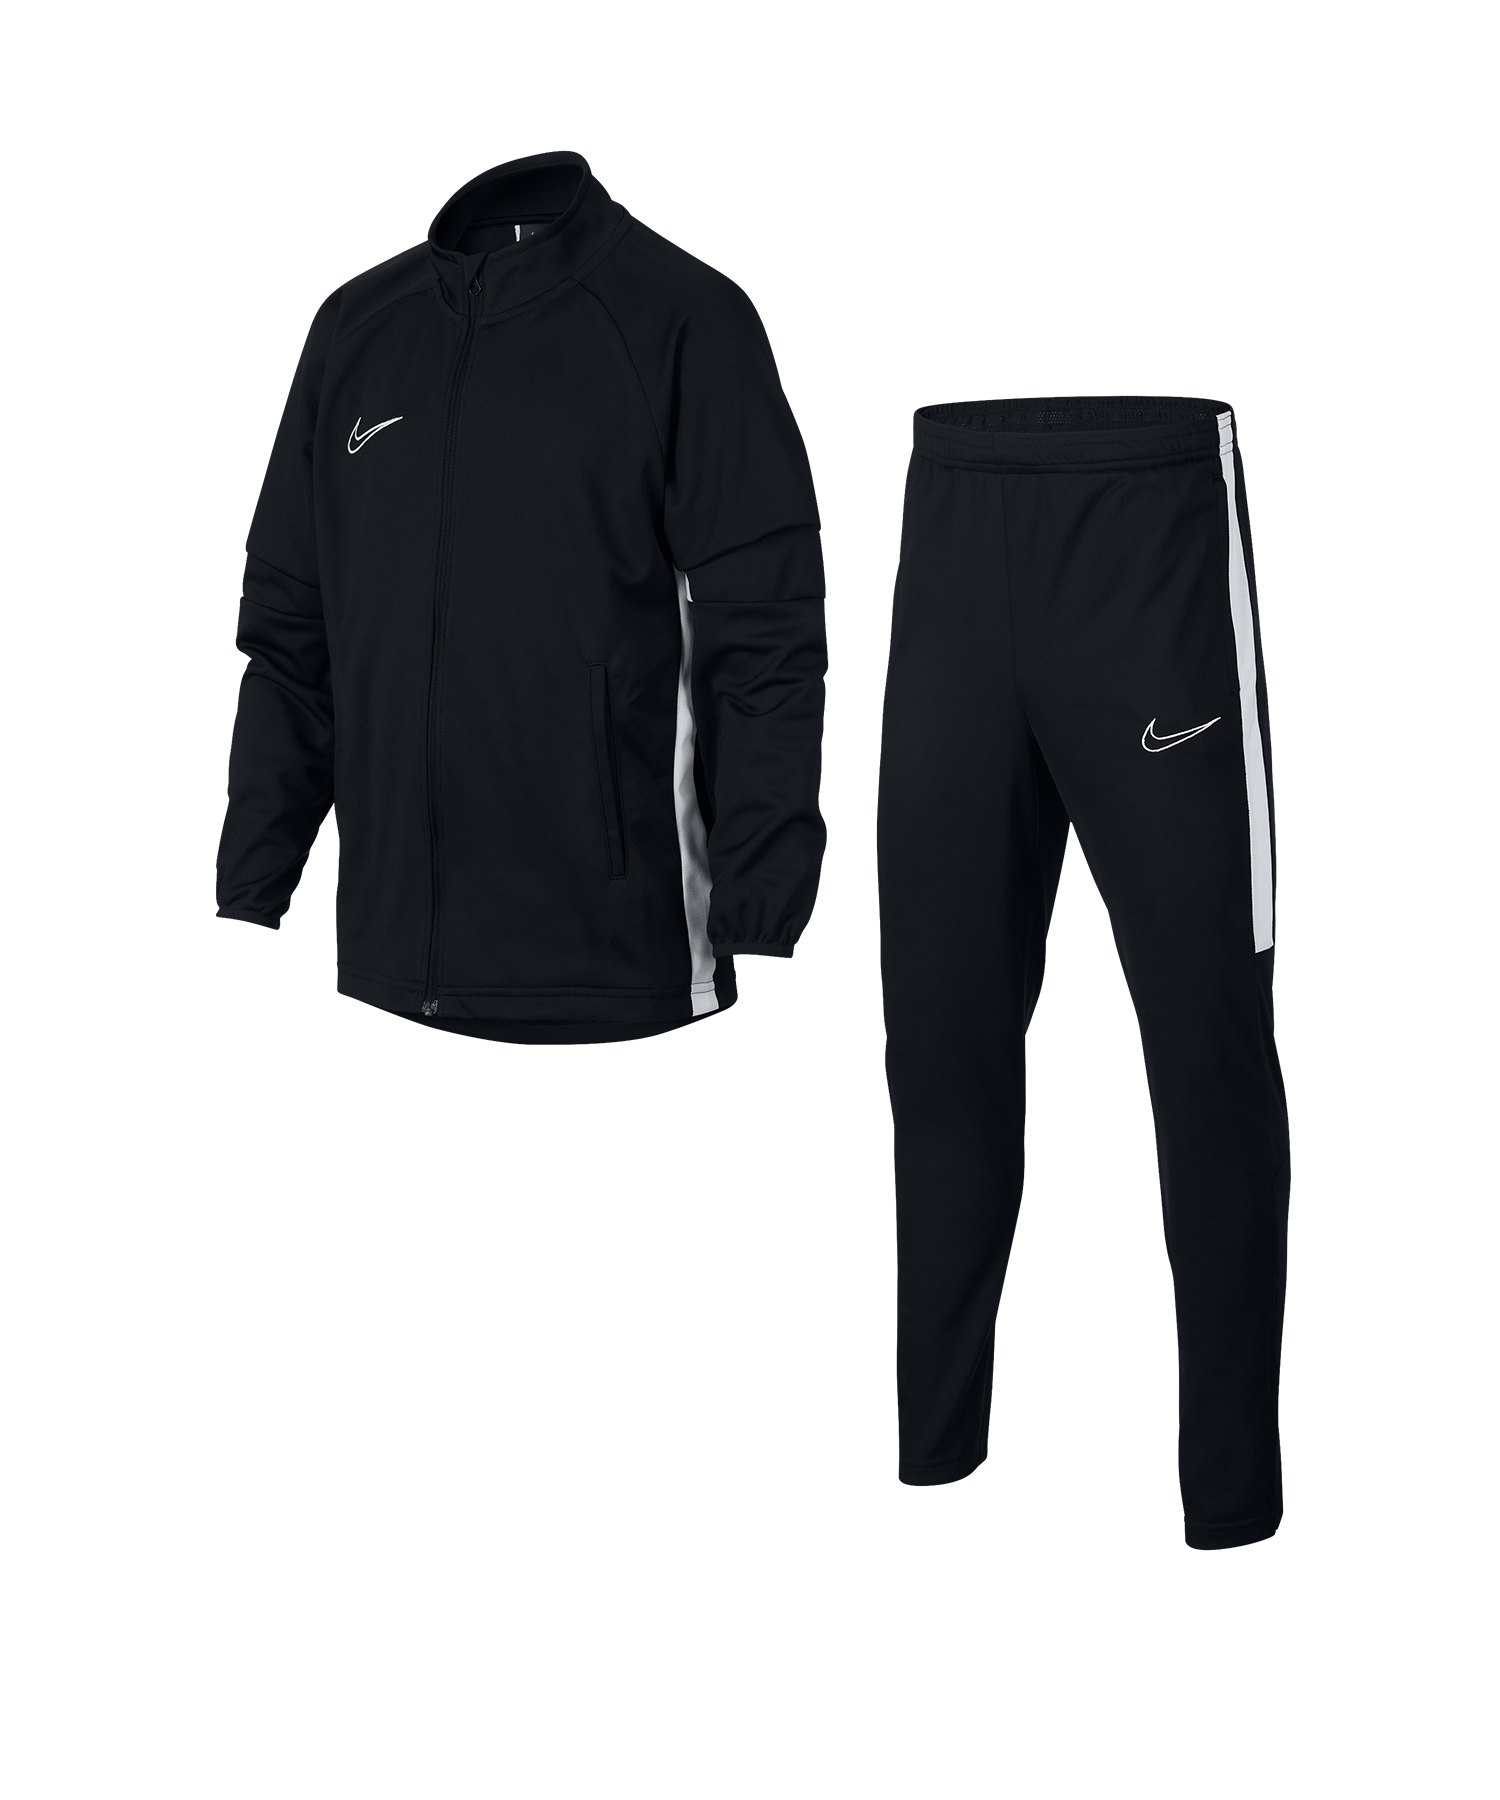 Nike Polyester Trainingshose Kinder Kids schwarz